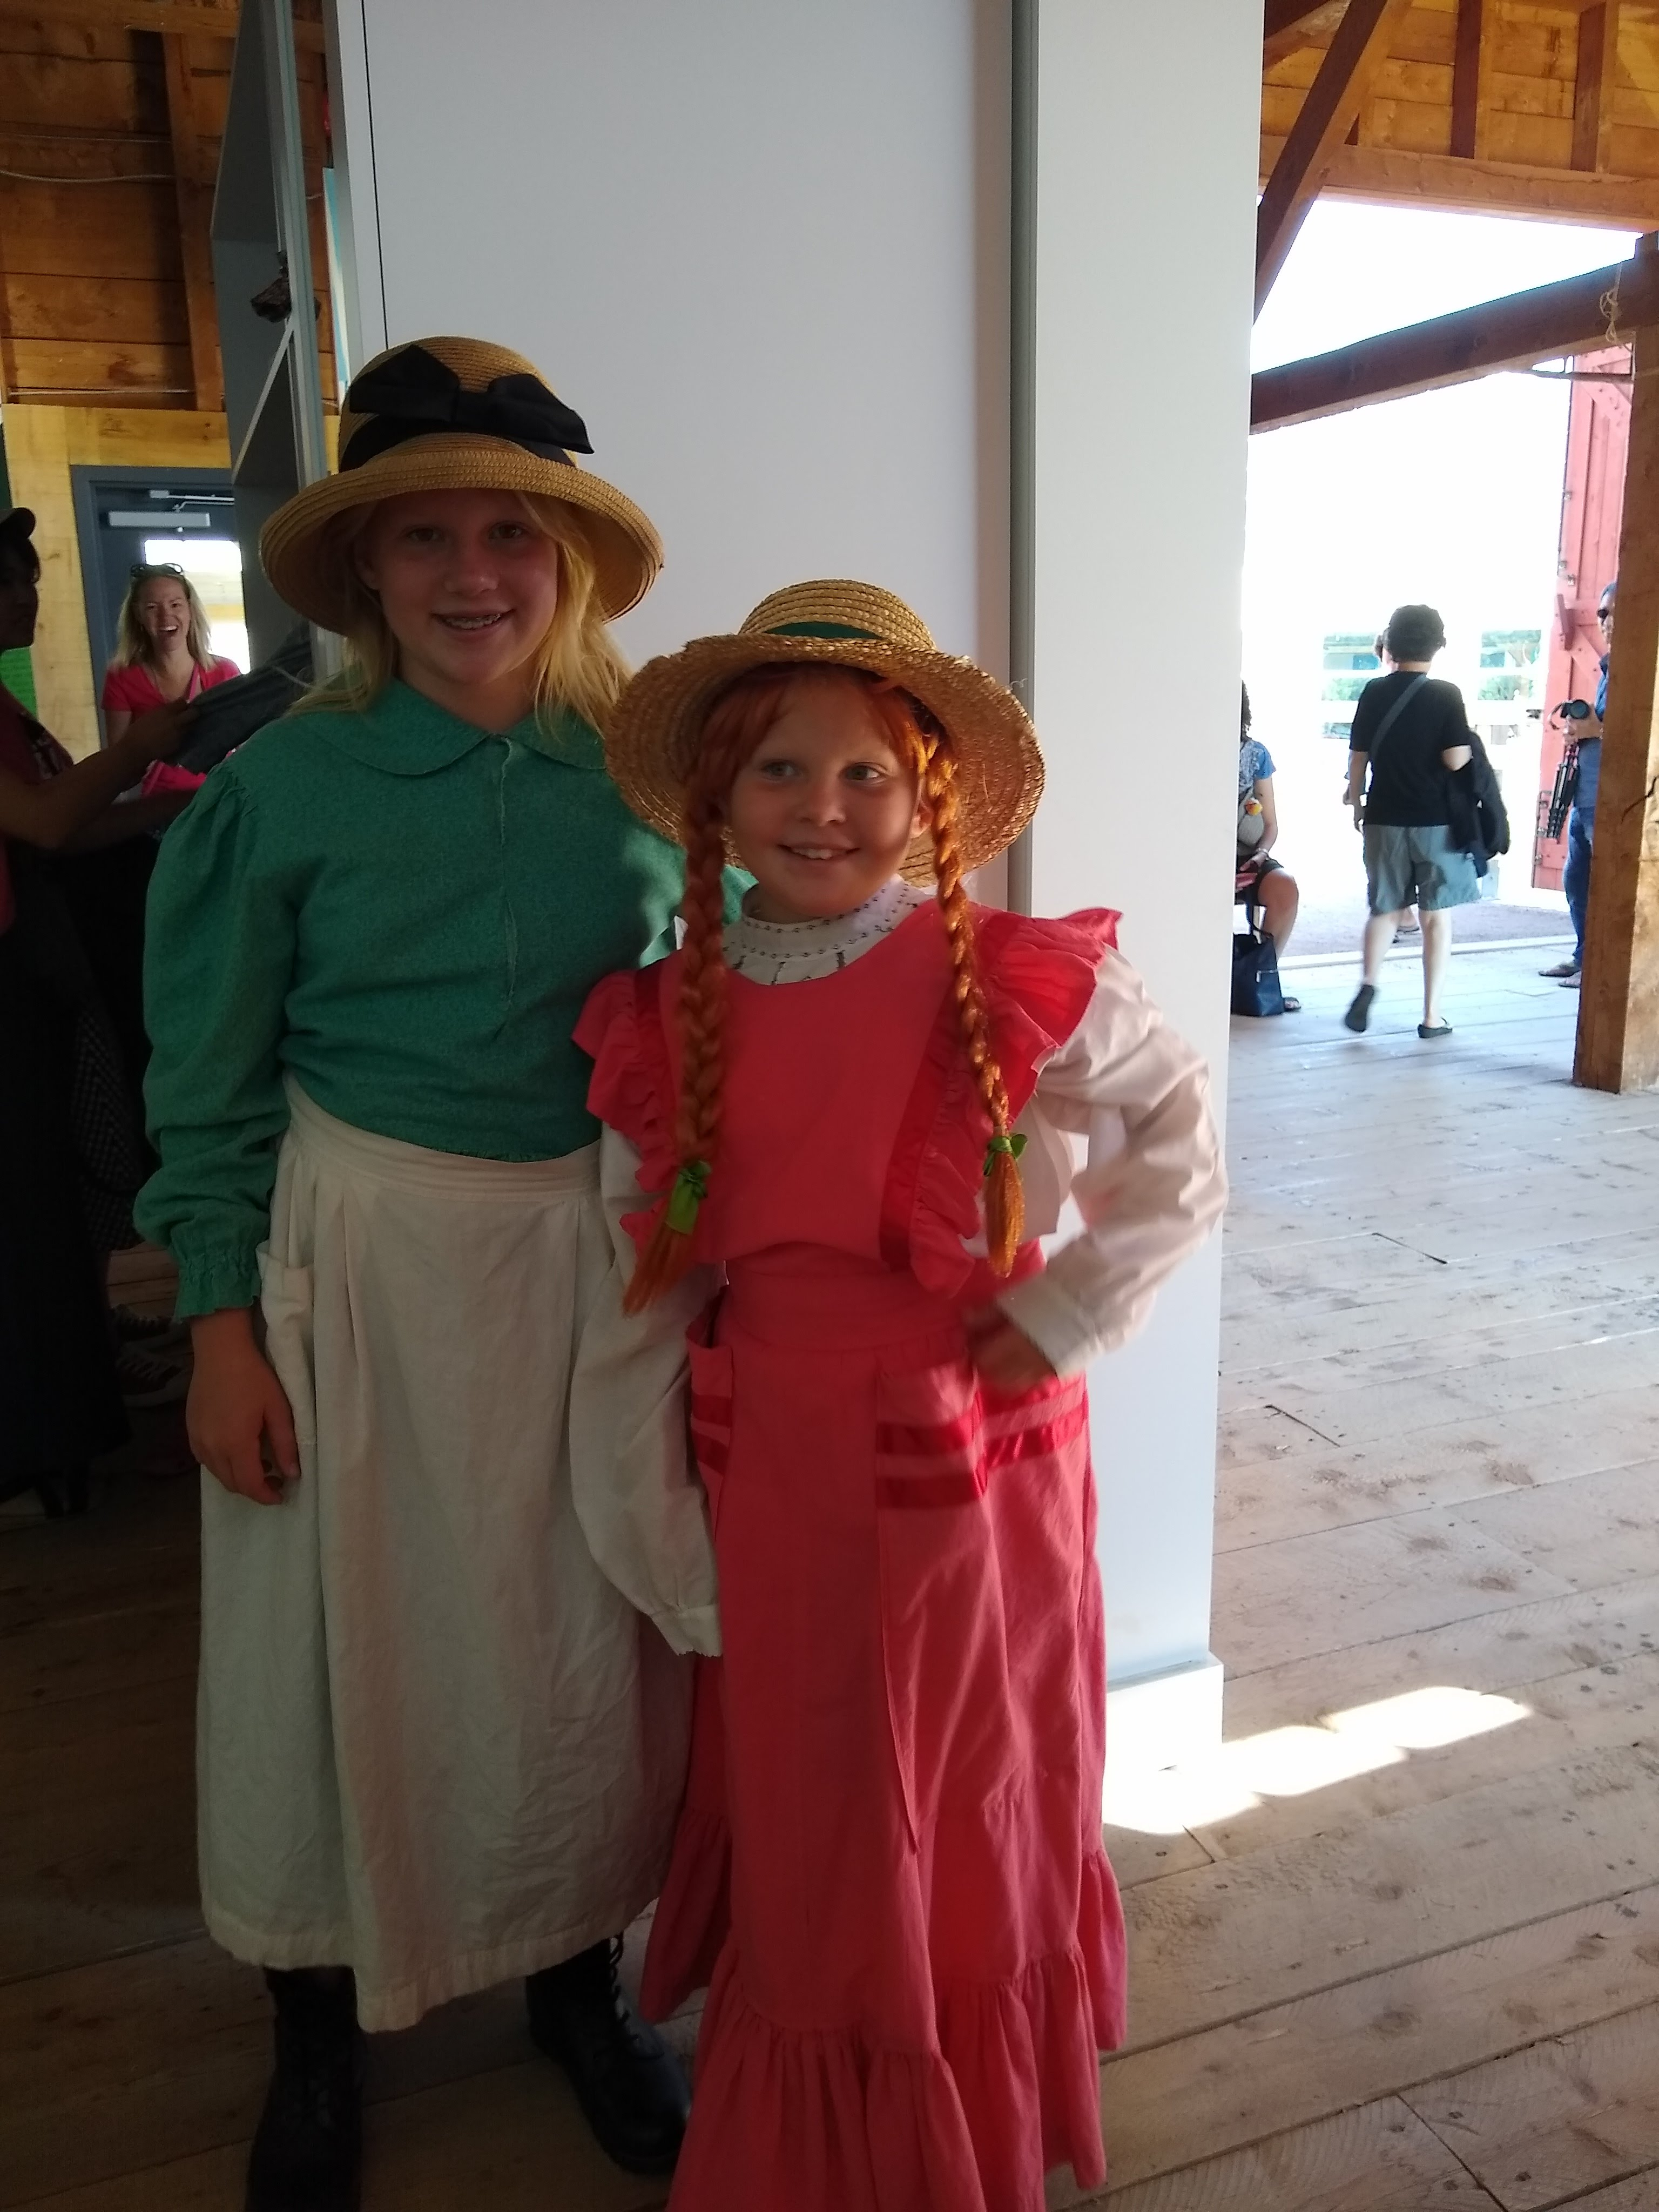 Audrey and Lorelei as Anne